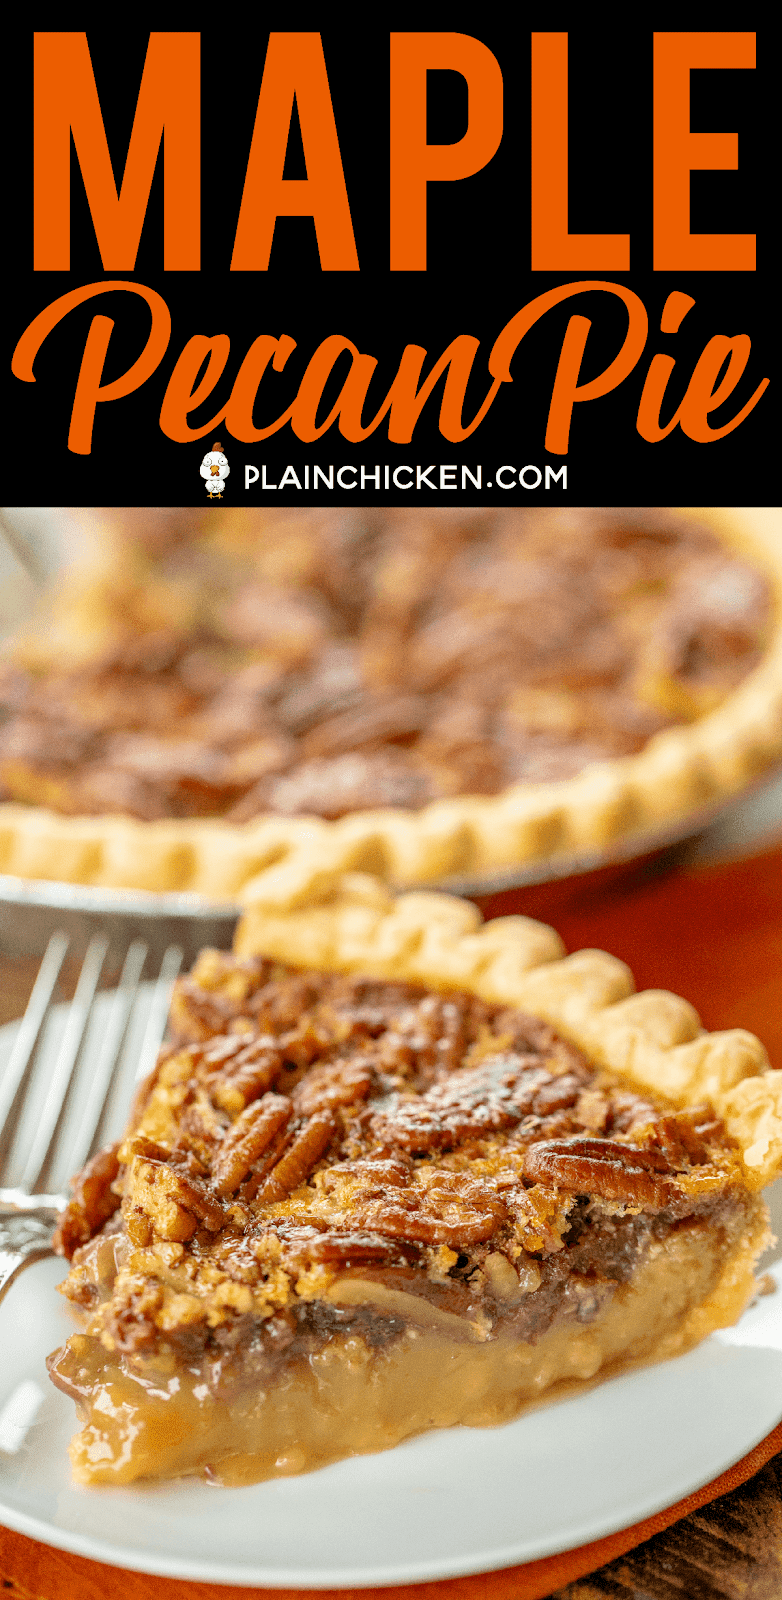 Maple Pecan Pie - seriously delicious!!! SO much amazing flavor from the real maple syrup! Super easy to make! Pie crust, sugar, maple syrup, butter, eggs, pecans, vanilla. Make the day before. Serve with vanilla ice cream and caramel sauce! YUM! #pie #dessert #thanksgiving #christmas #pecanpie #maplesyrup